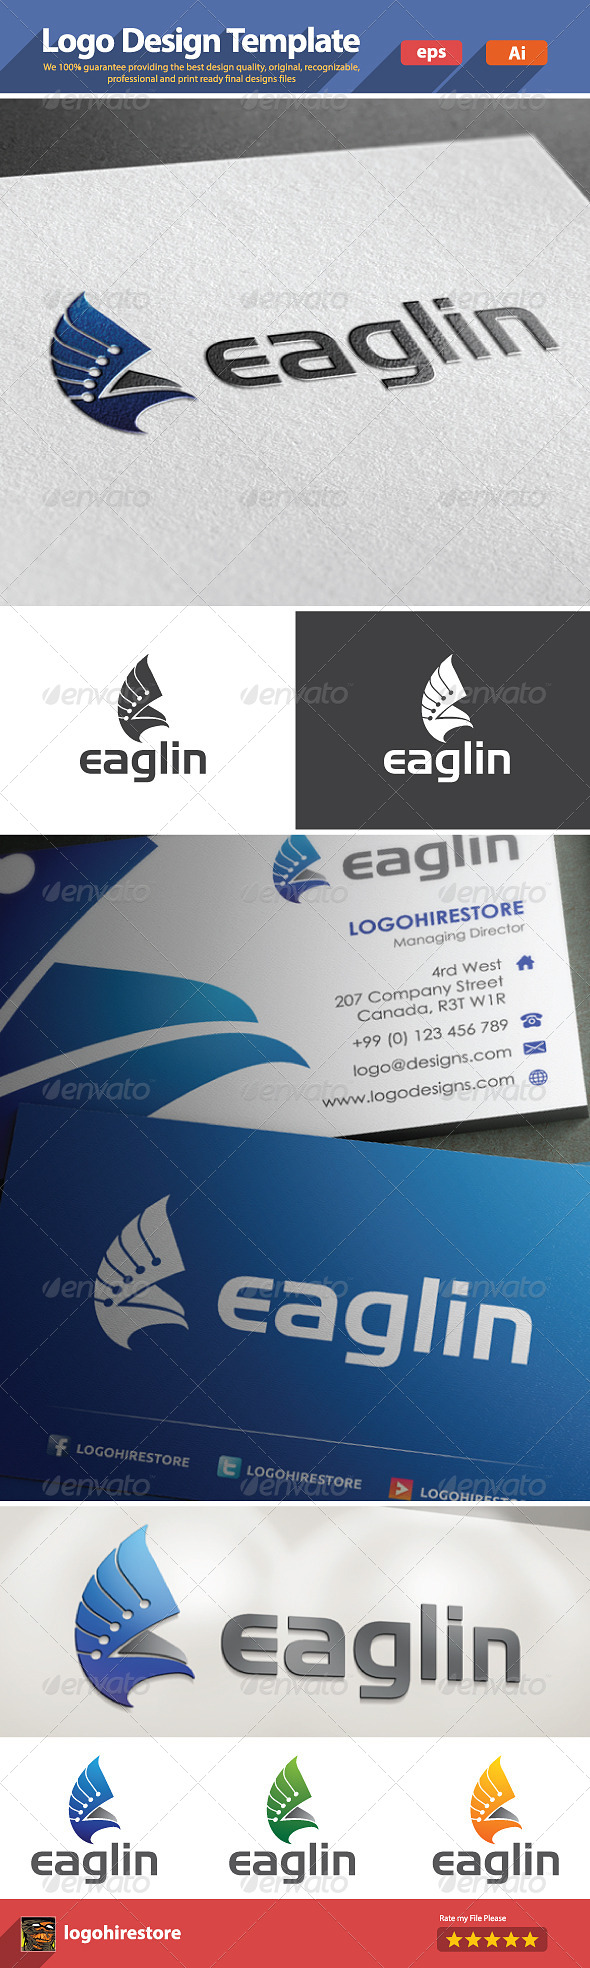 GraphicRiver Eaglin 6222682